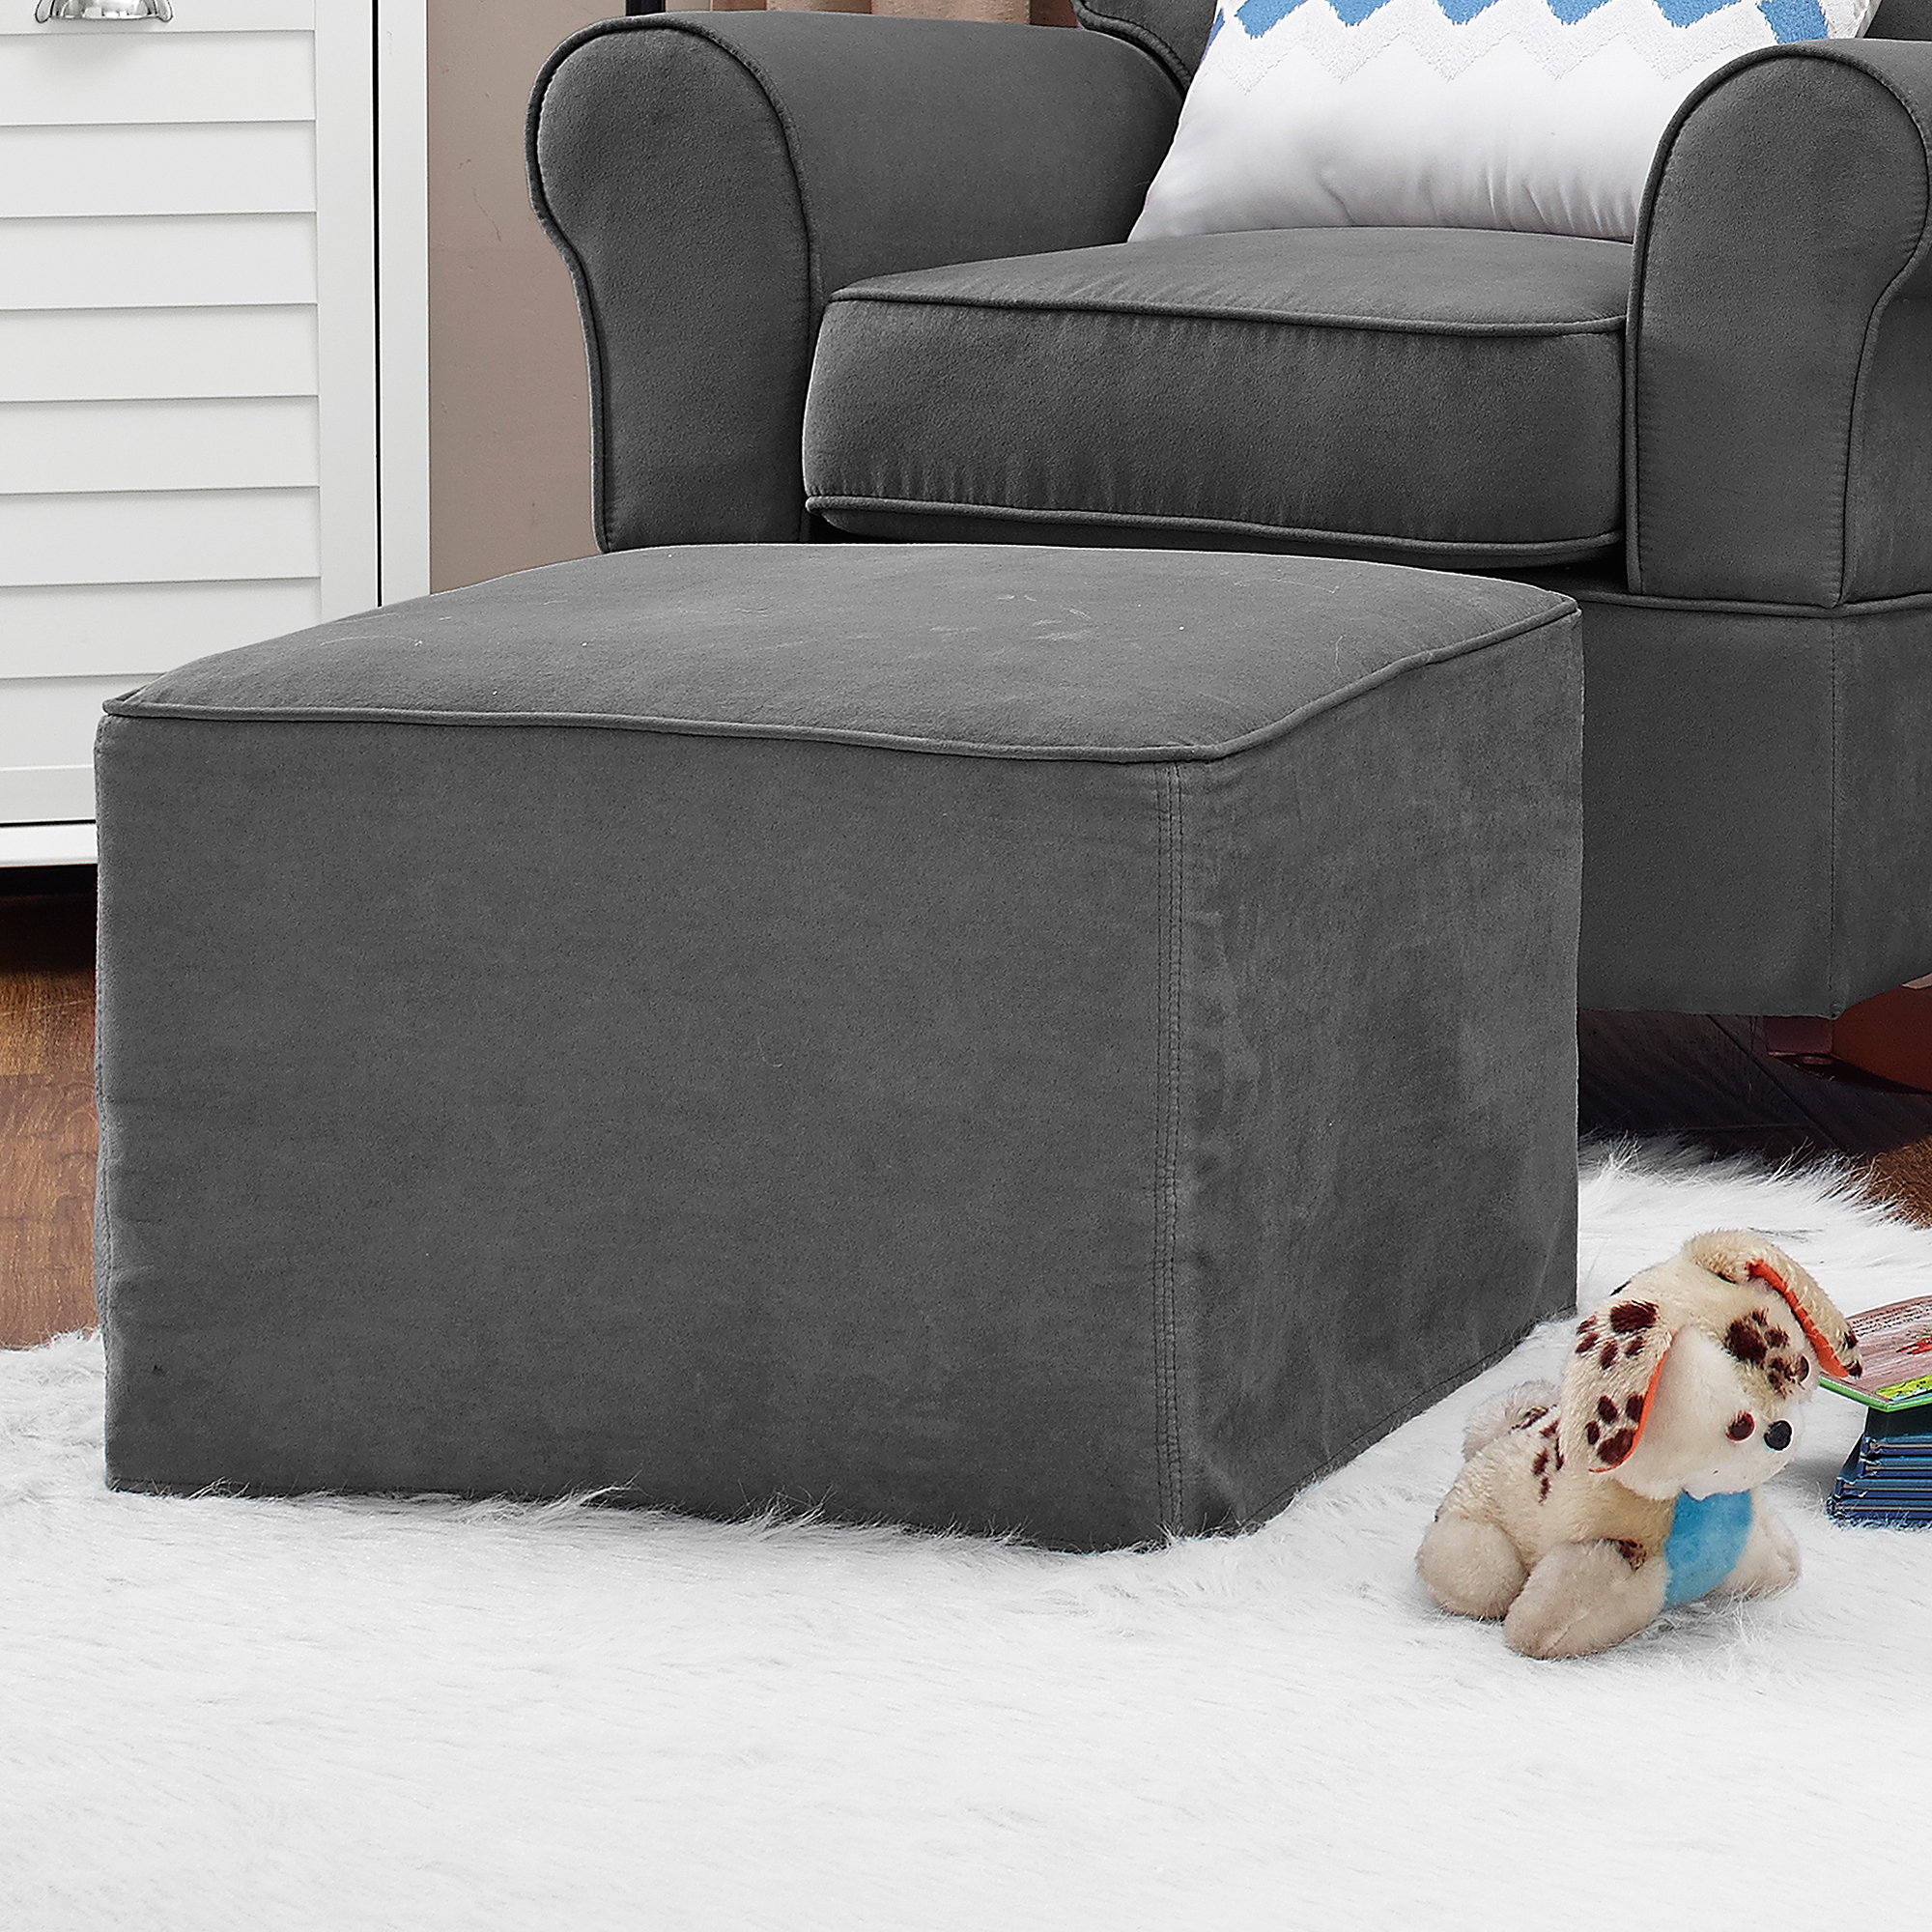 Abbey Swivel Glider Recliners With Fashionable Baby Relax Abby Rocker Gray – Walmart (View 7 of 20)